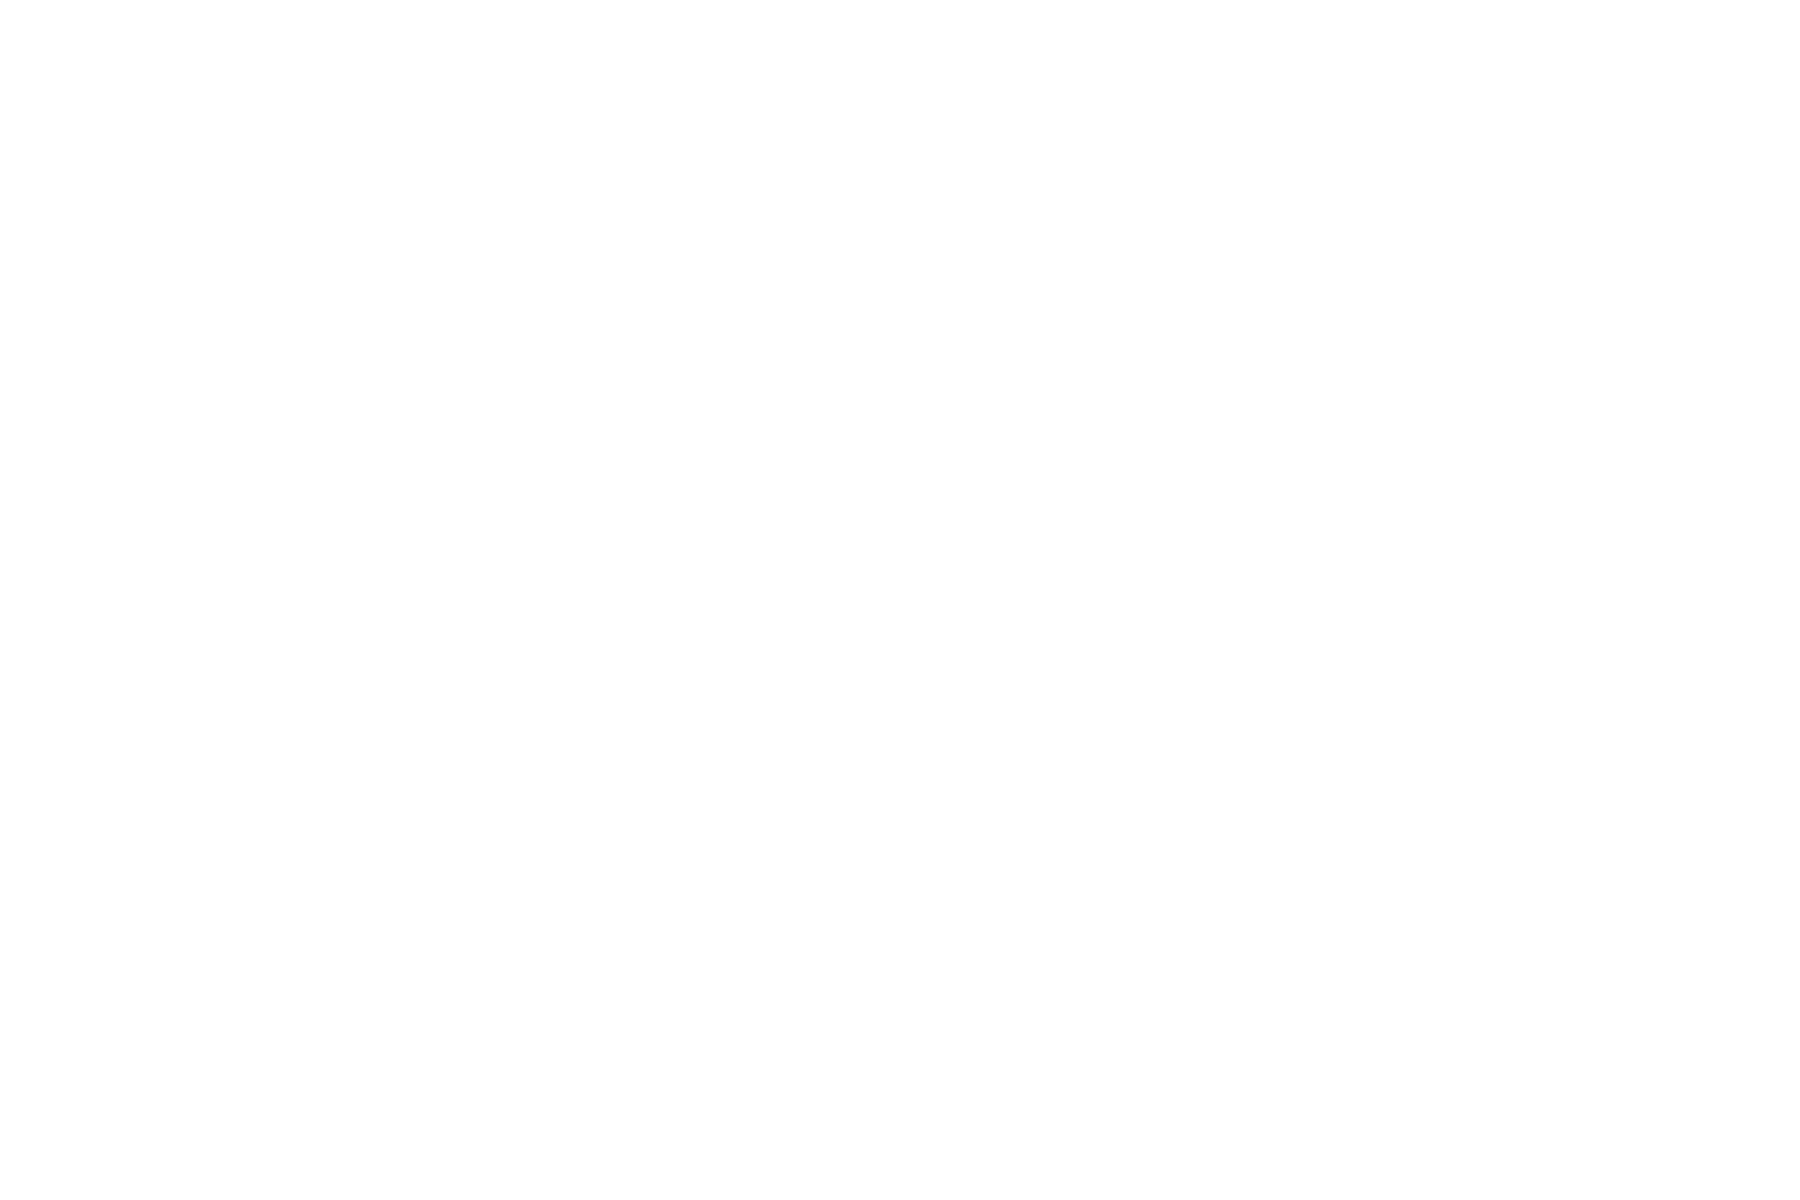 FABRICATE-TEXT